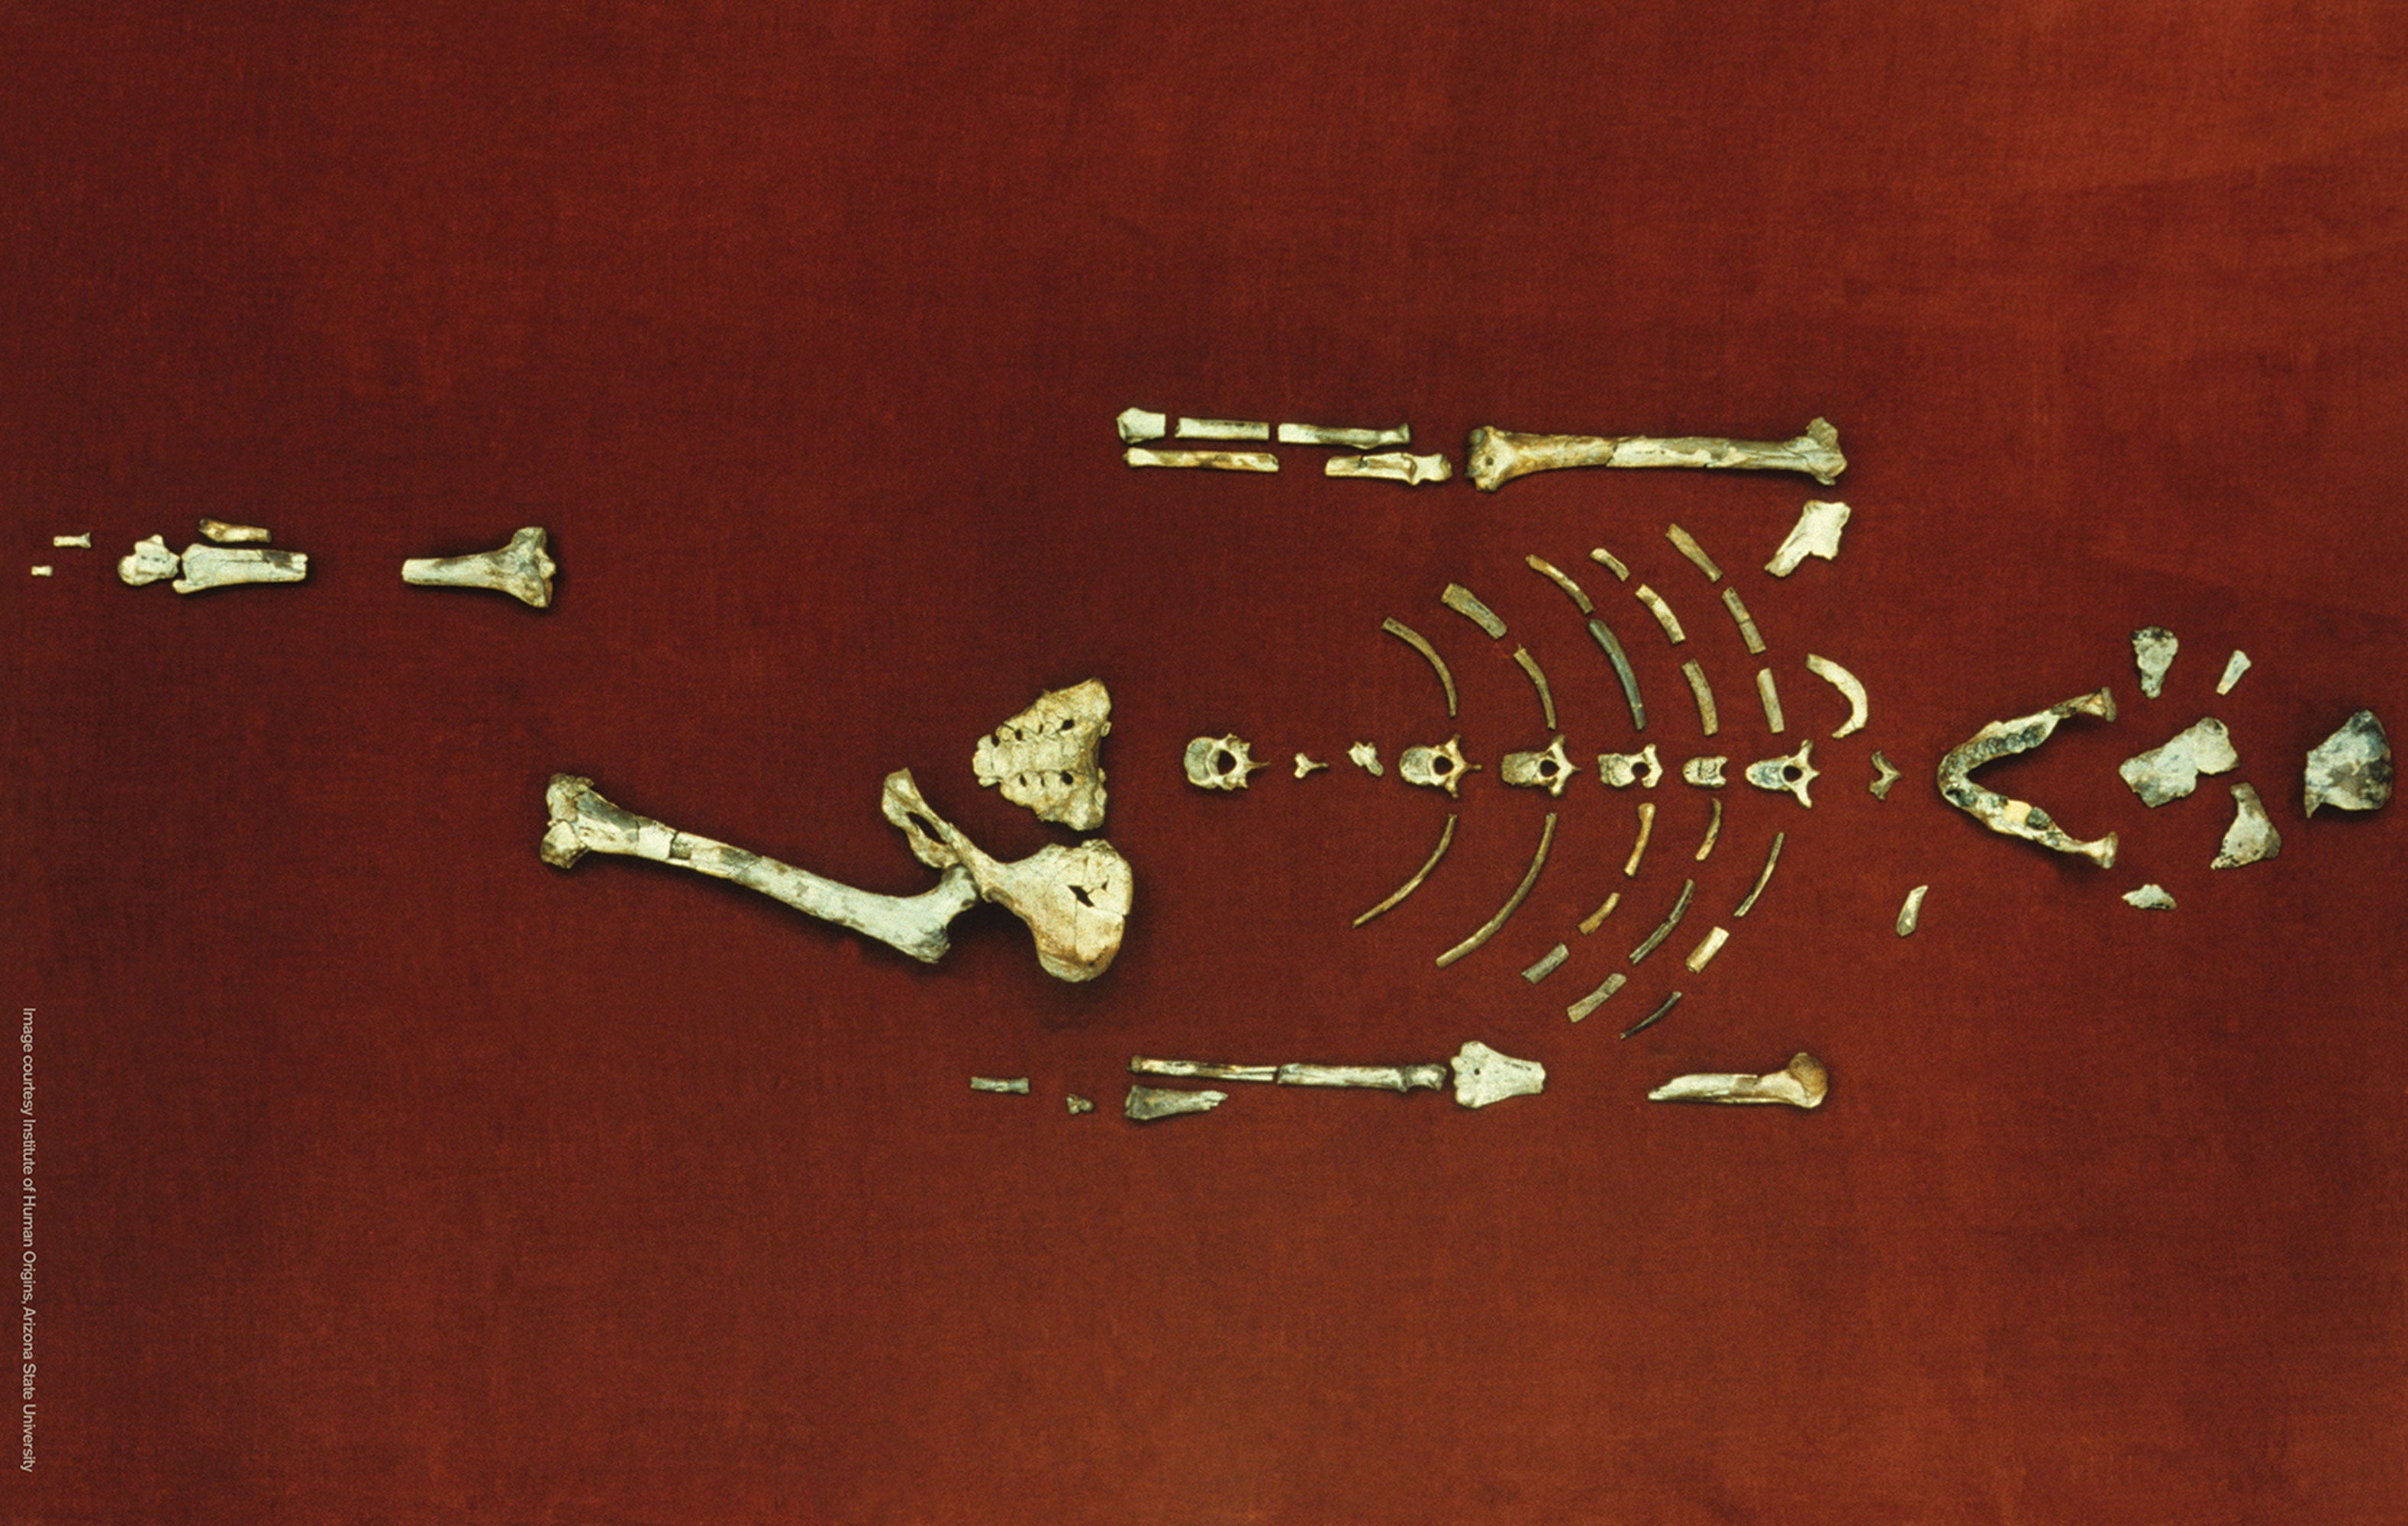 Skeleton of the hominid Lucy